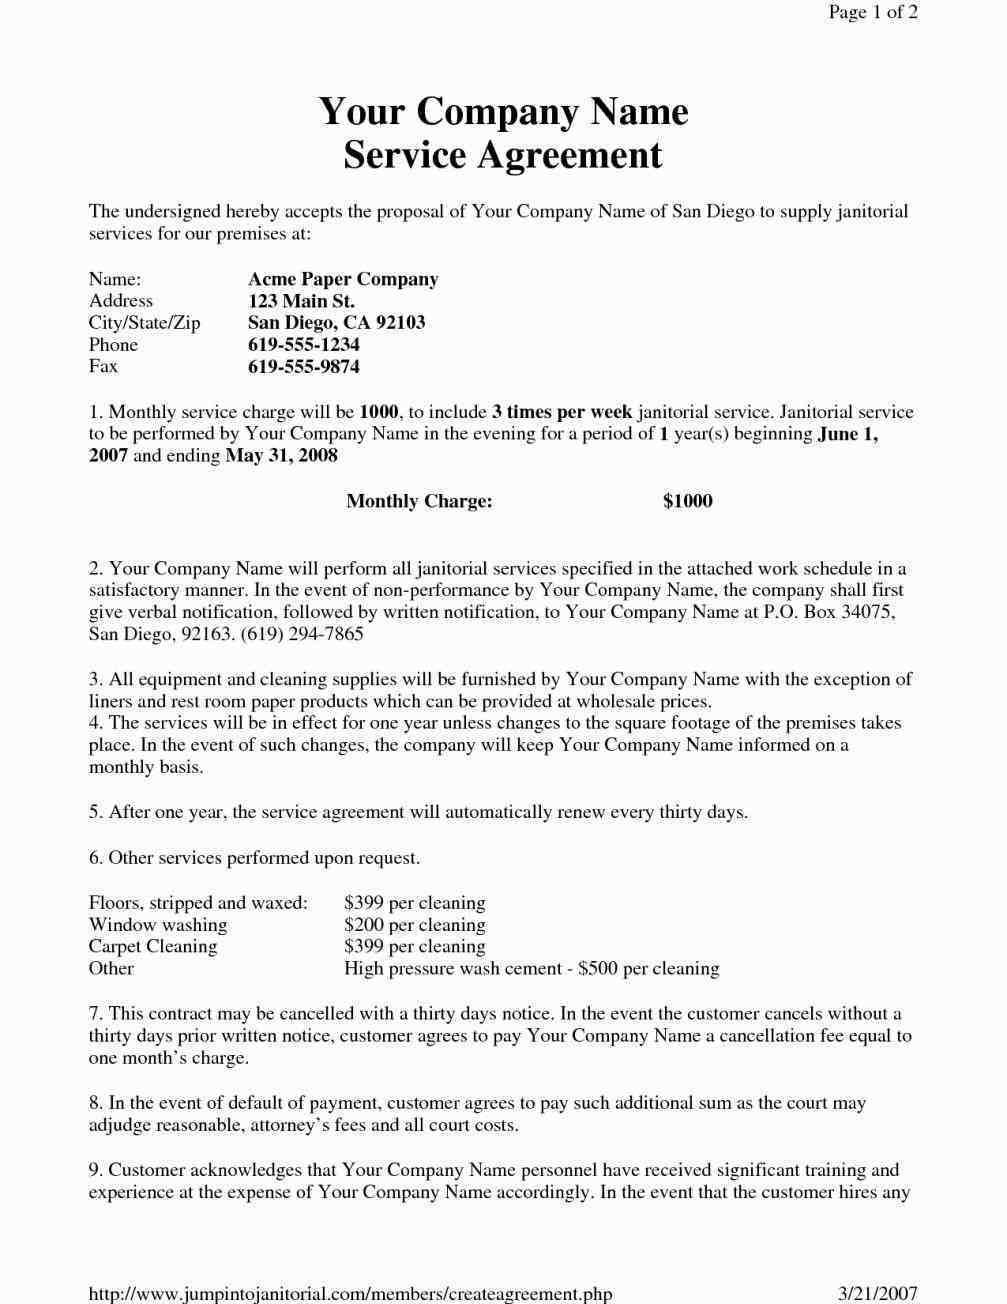 form janitorial subcontractor agreement images cleaning Janitorial ...